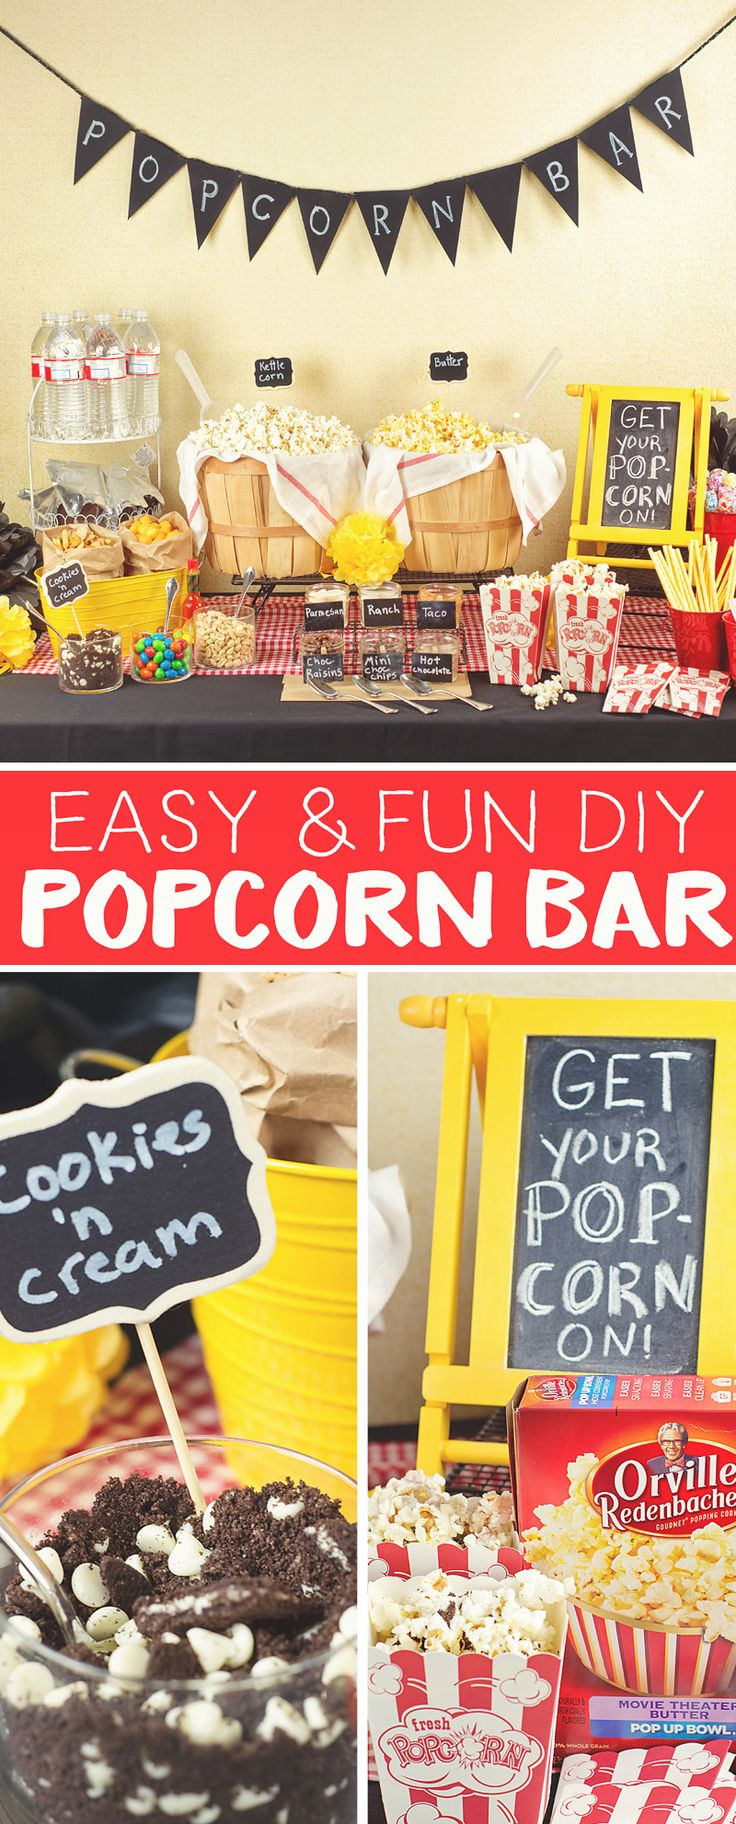 "DIY Popcorn Bars are ""popping"" up at all types of parties and get together's! Here are a few tips for Creating the Best DIY Popcorn Bar at your next gathering."